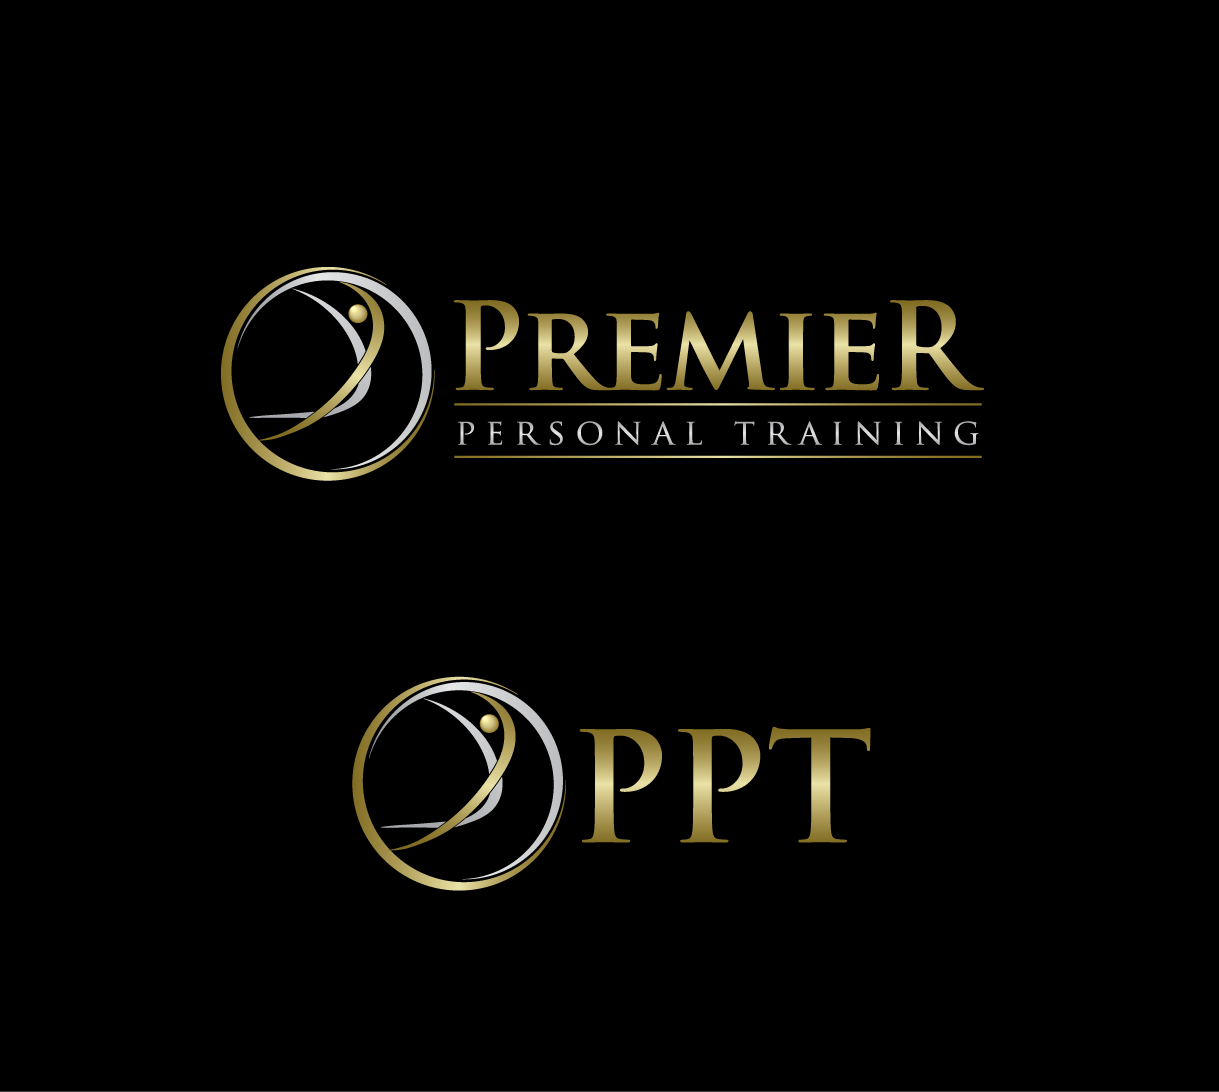 Premier Personal Training needs a new logo